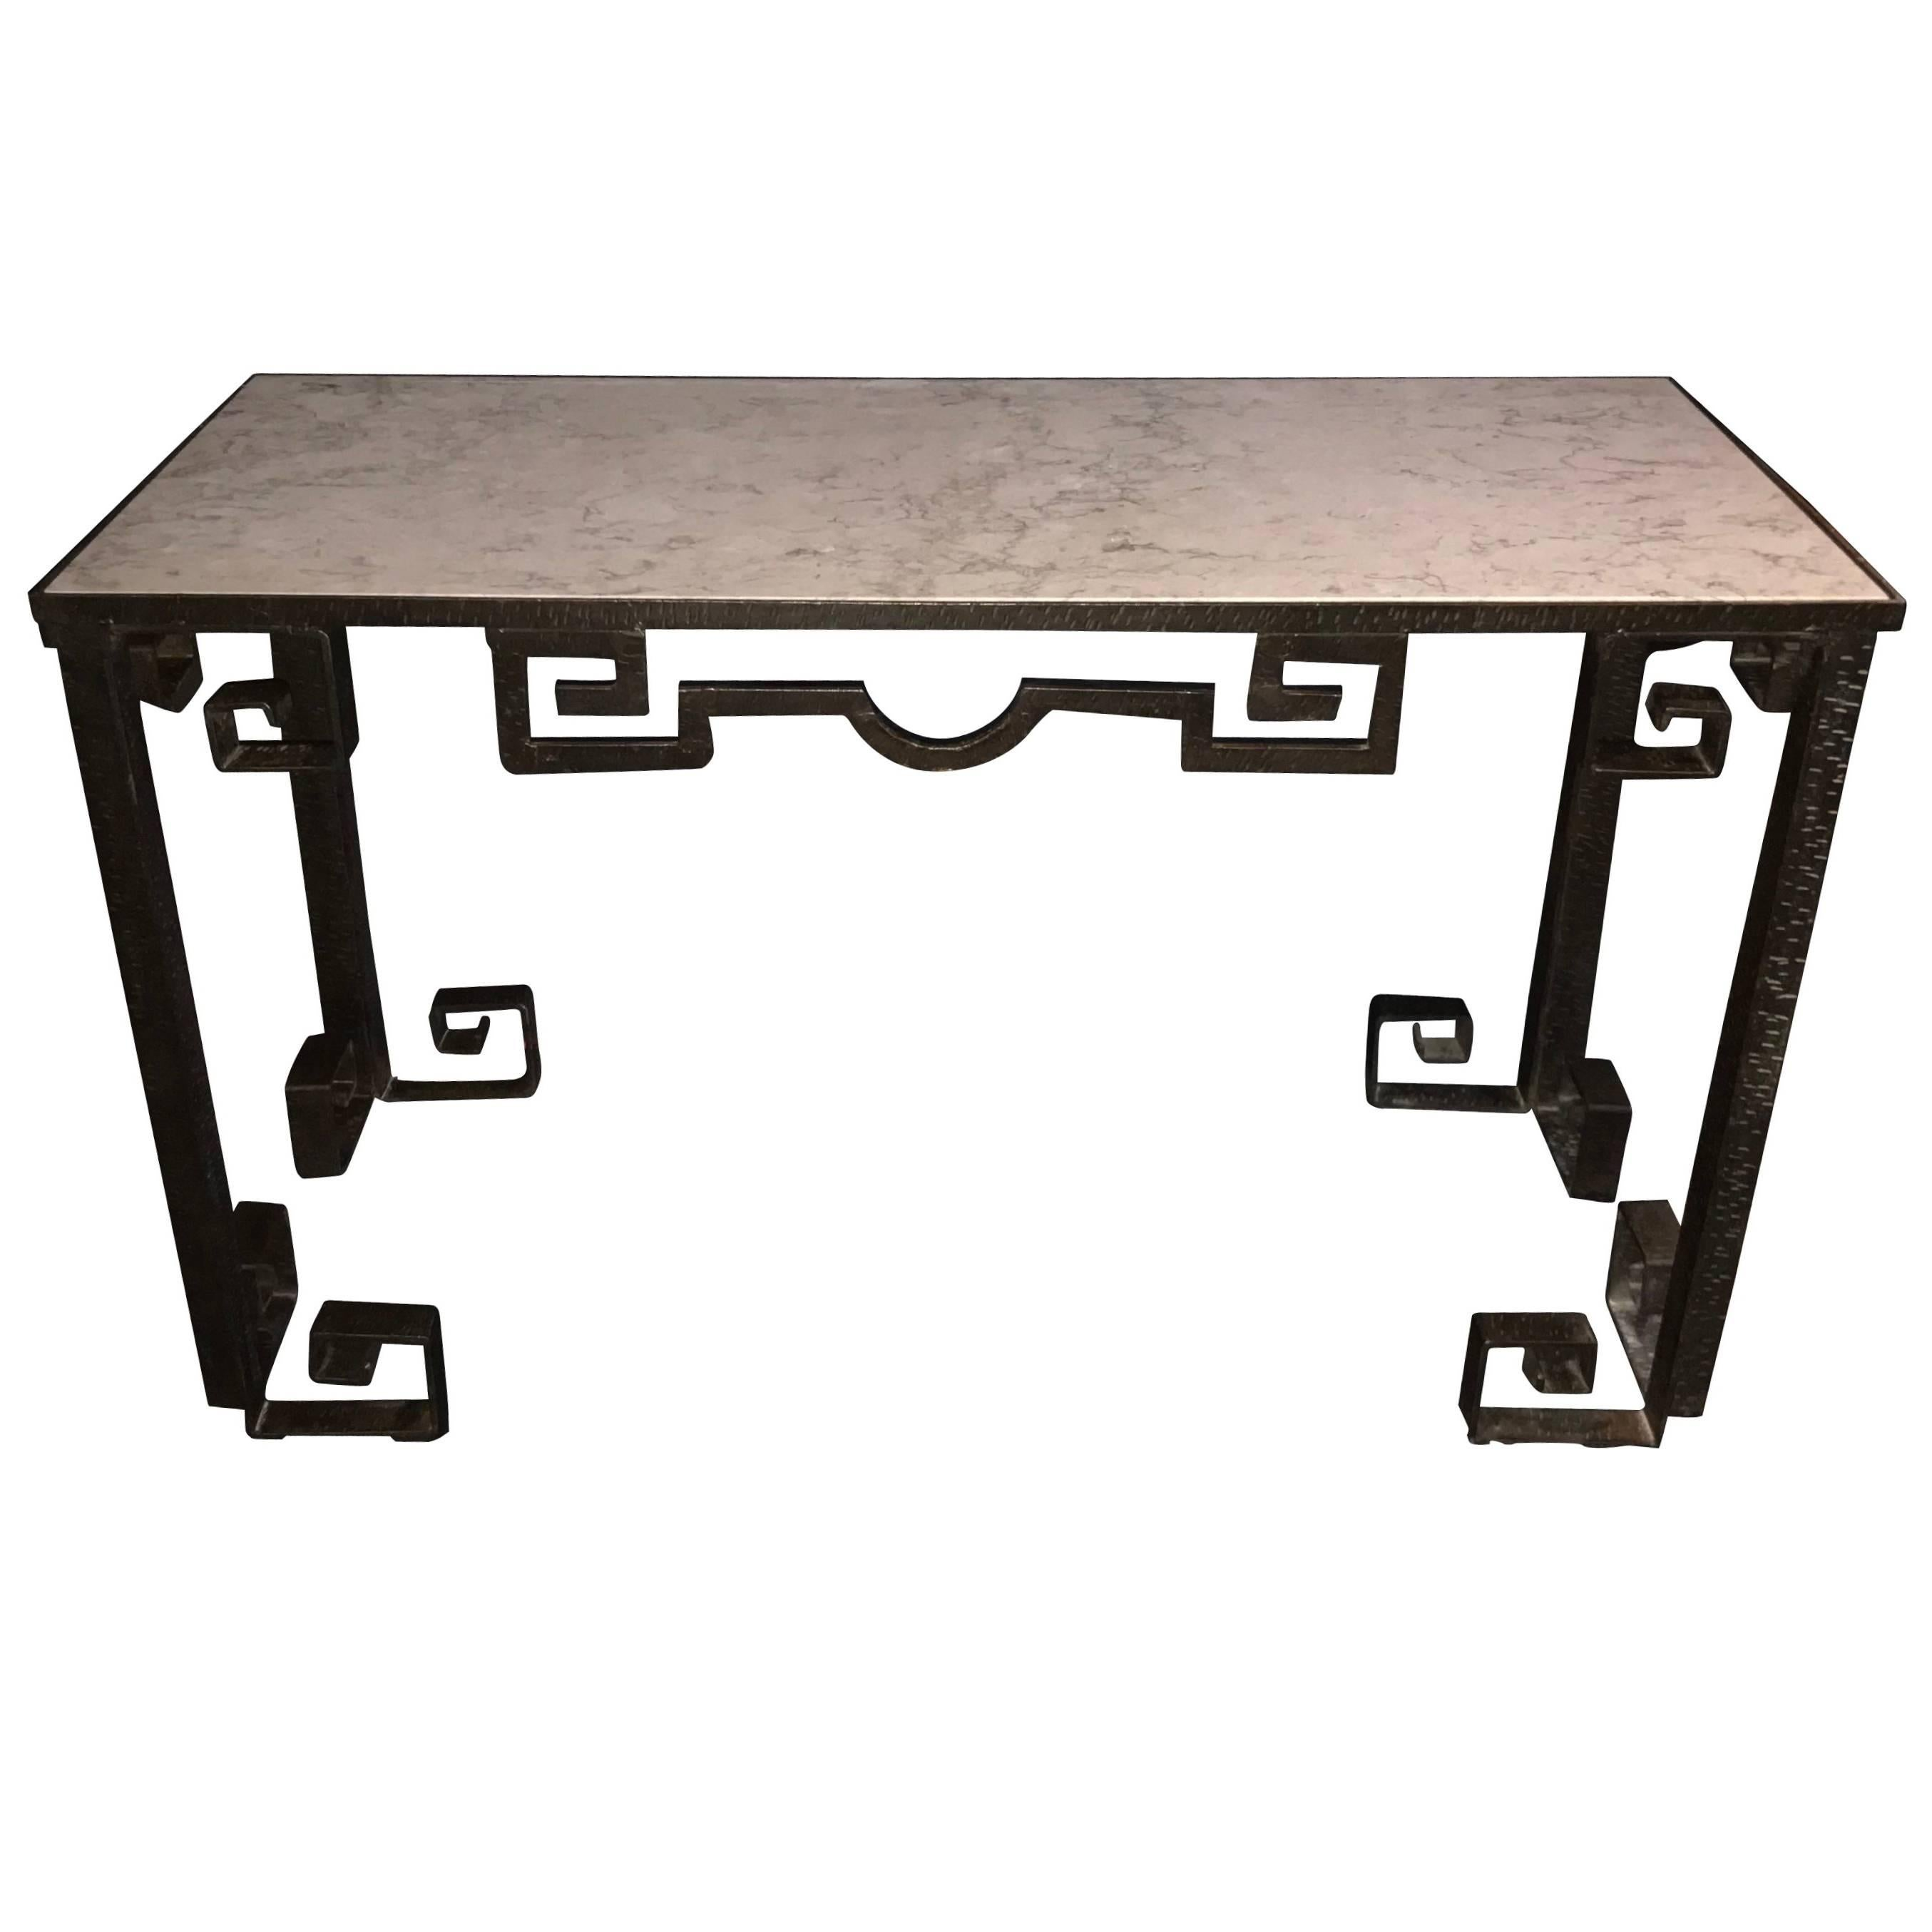 Greek Key Design Hammered Iron Marble Top Console Table, France, 1950s